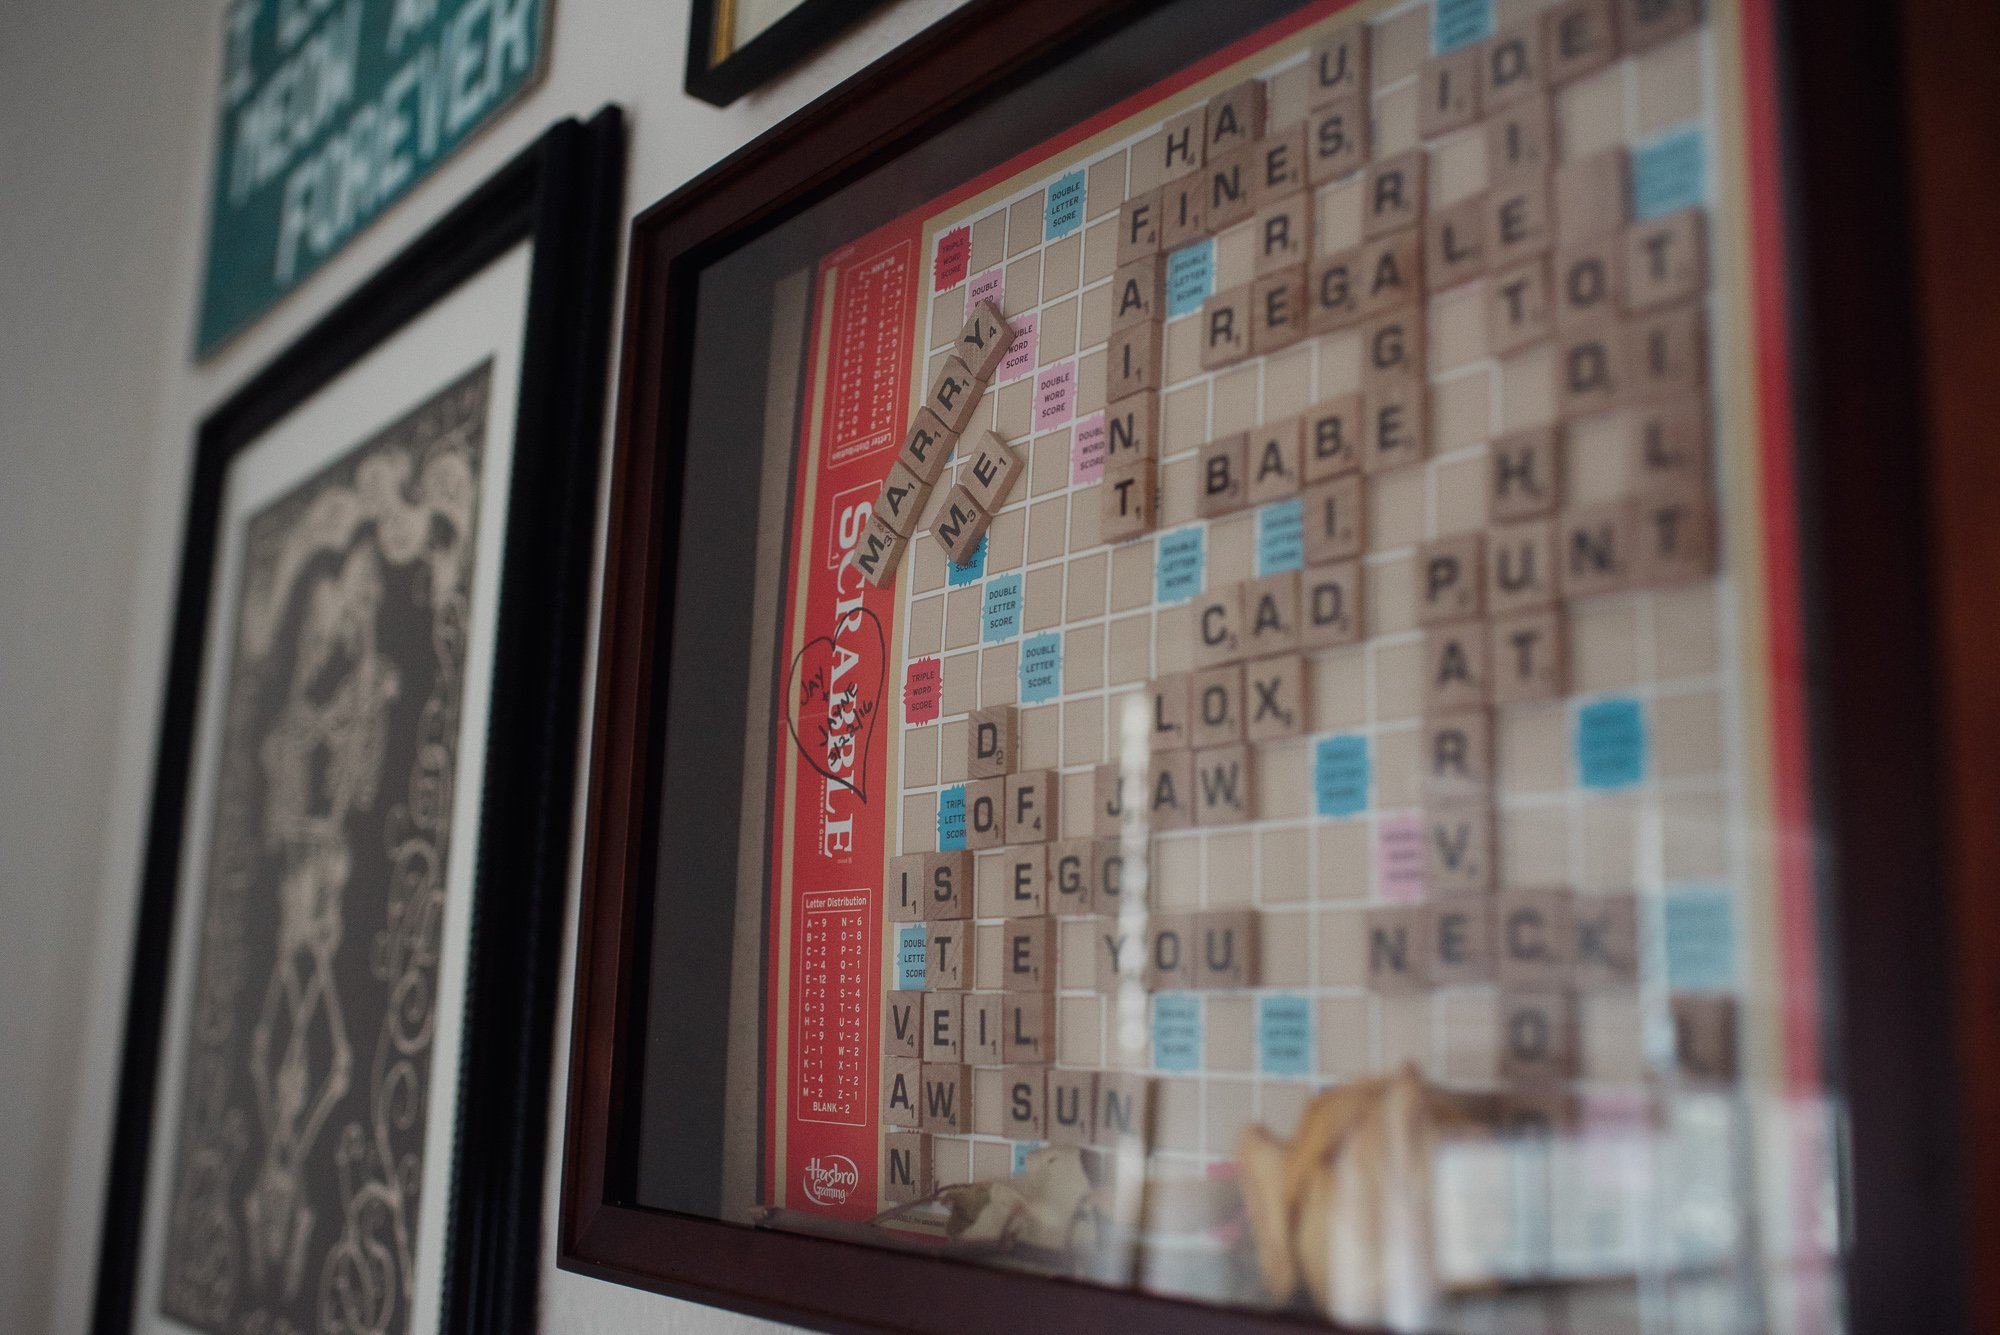 proposal question on a scrabble board, engagement session details, at home engagement session details